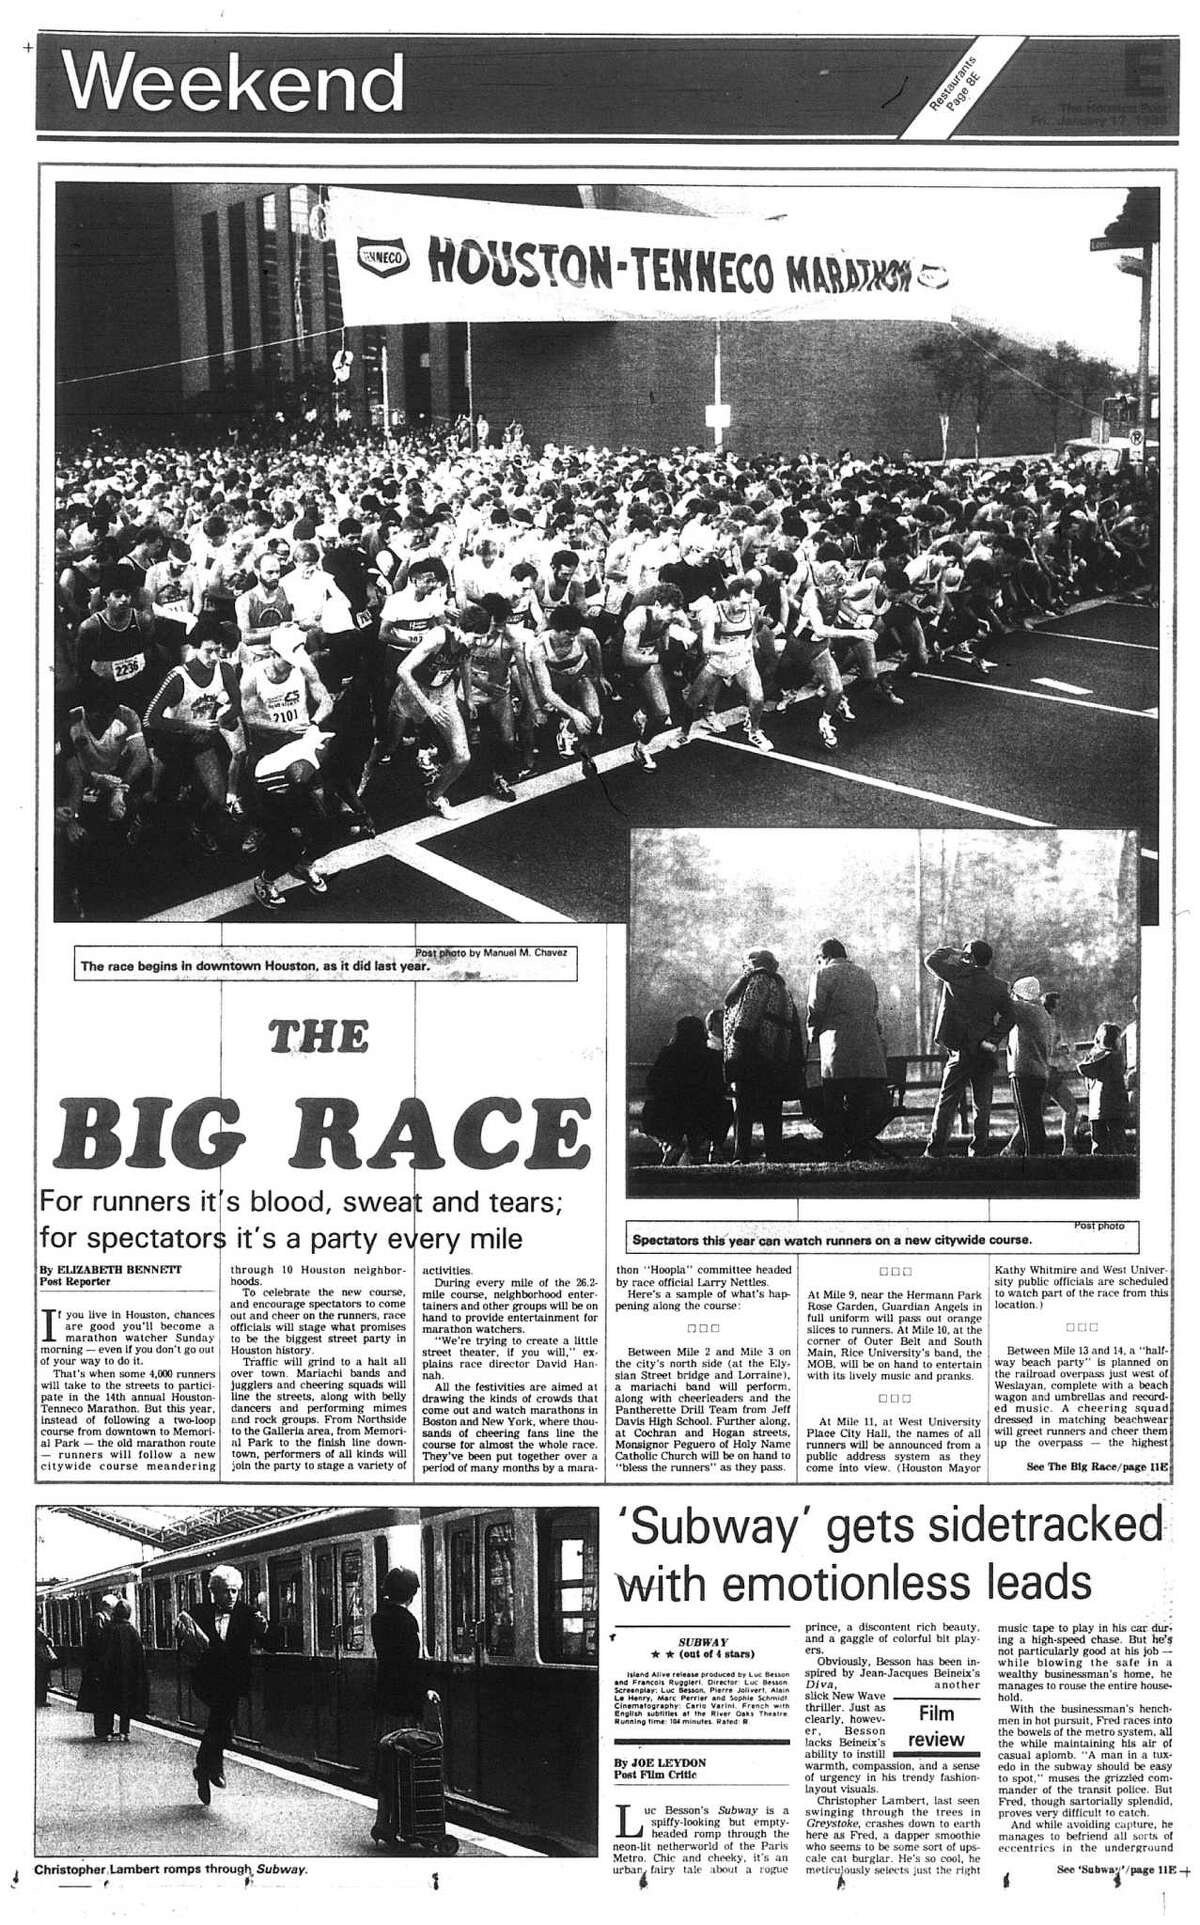 Houston Post inside page (HISTORIC) Â?- January 17, 1986 - section E, page 1. THE BIG RACE. For runners it's blood, sweat and tears; for spectators it's a party every mile